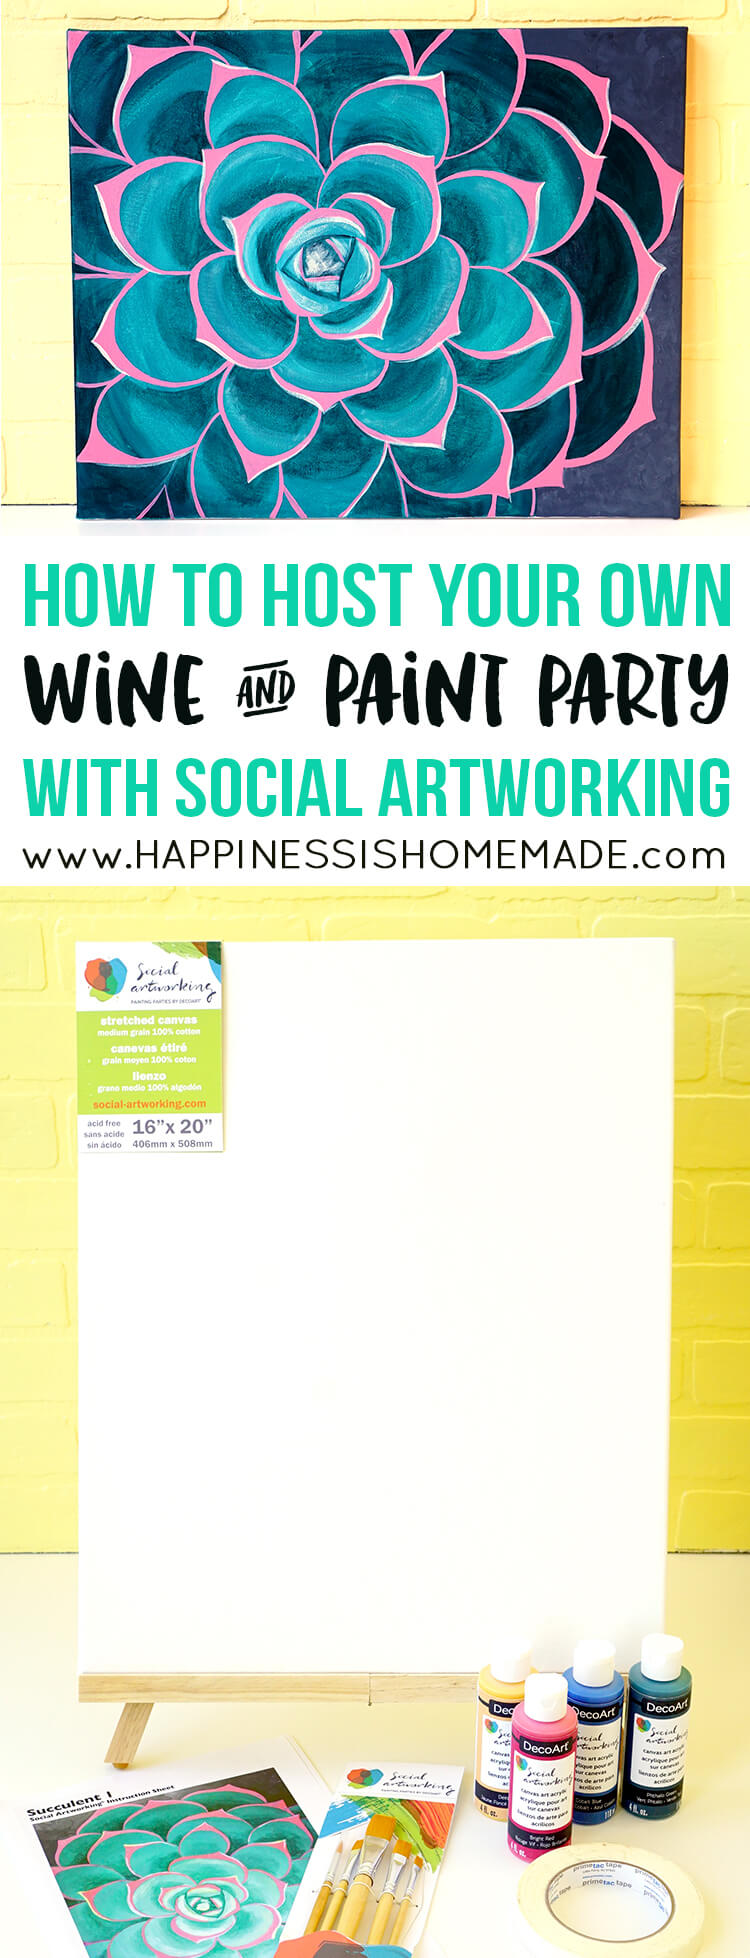 how-to-host-your-own-wine-and-paint-party